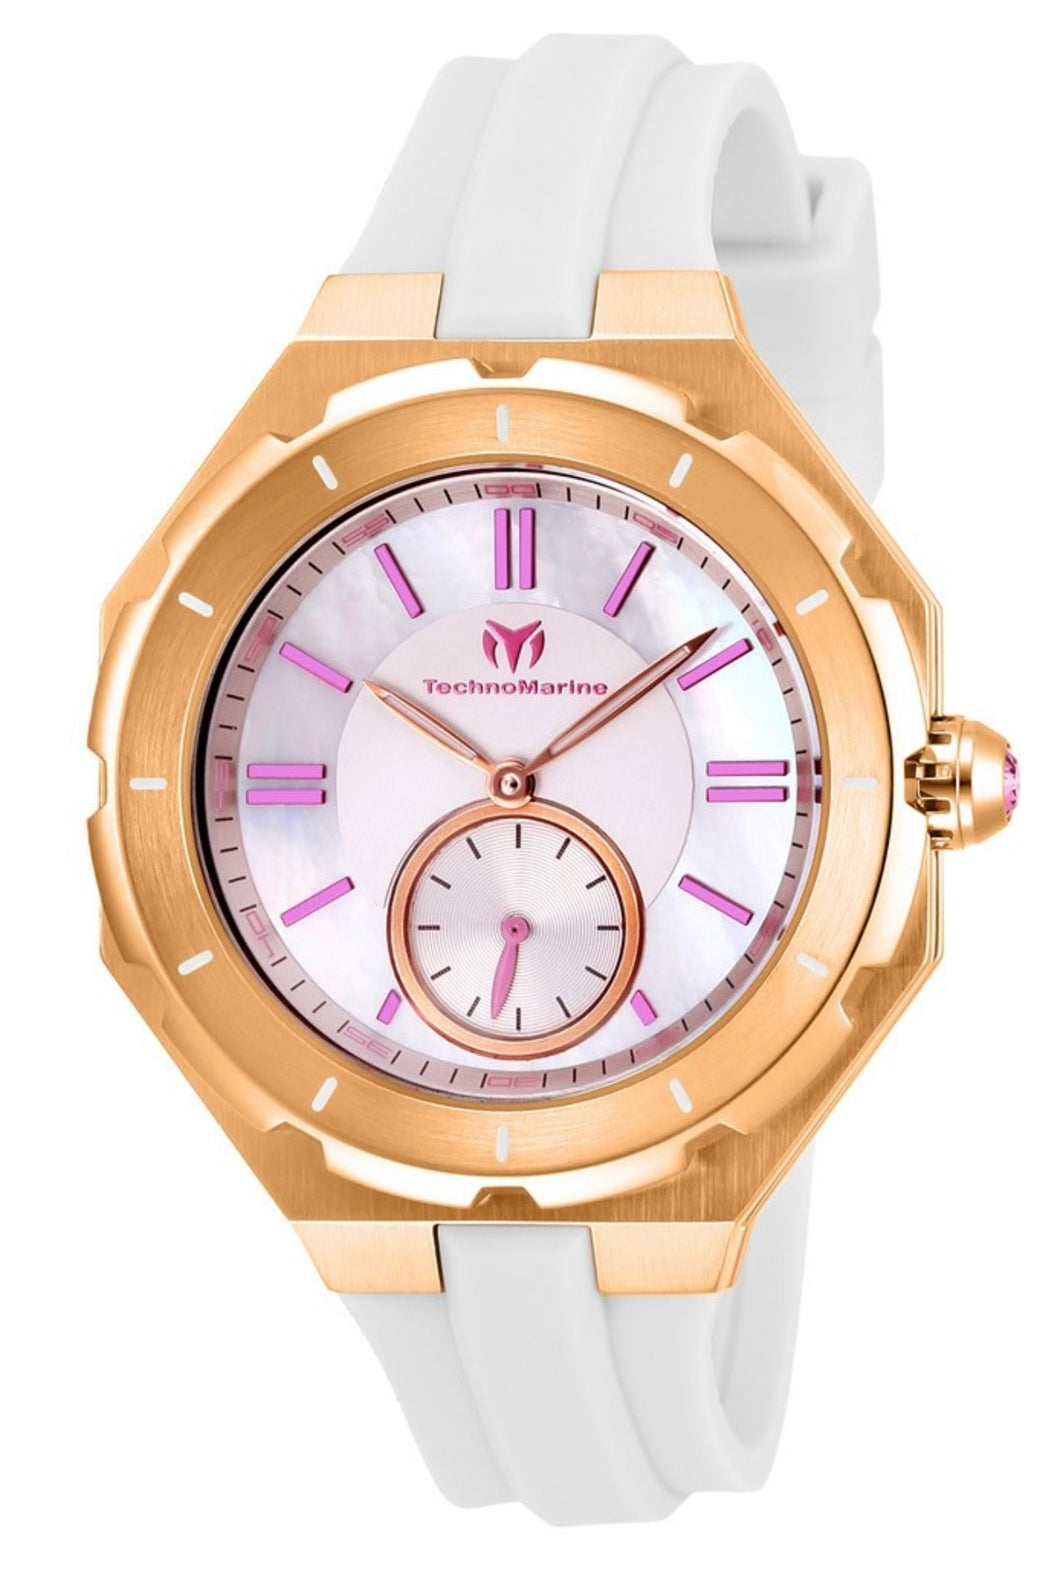 TECHNOMARINE CRUISE SEA LADY WOMENS 37.5MM MOTHER OF PEARL DIAL MODEL TM-118008 - Boutique Watches & More